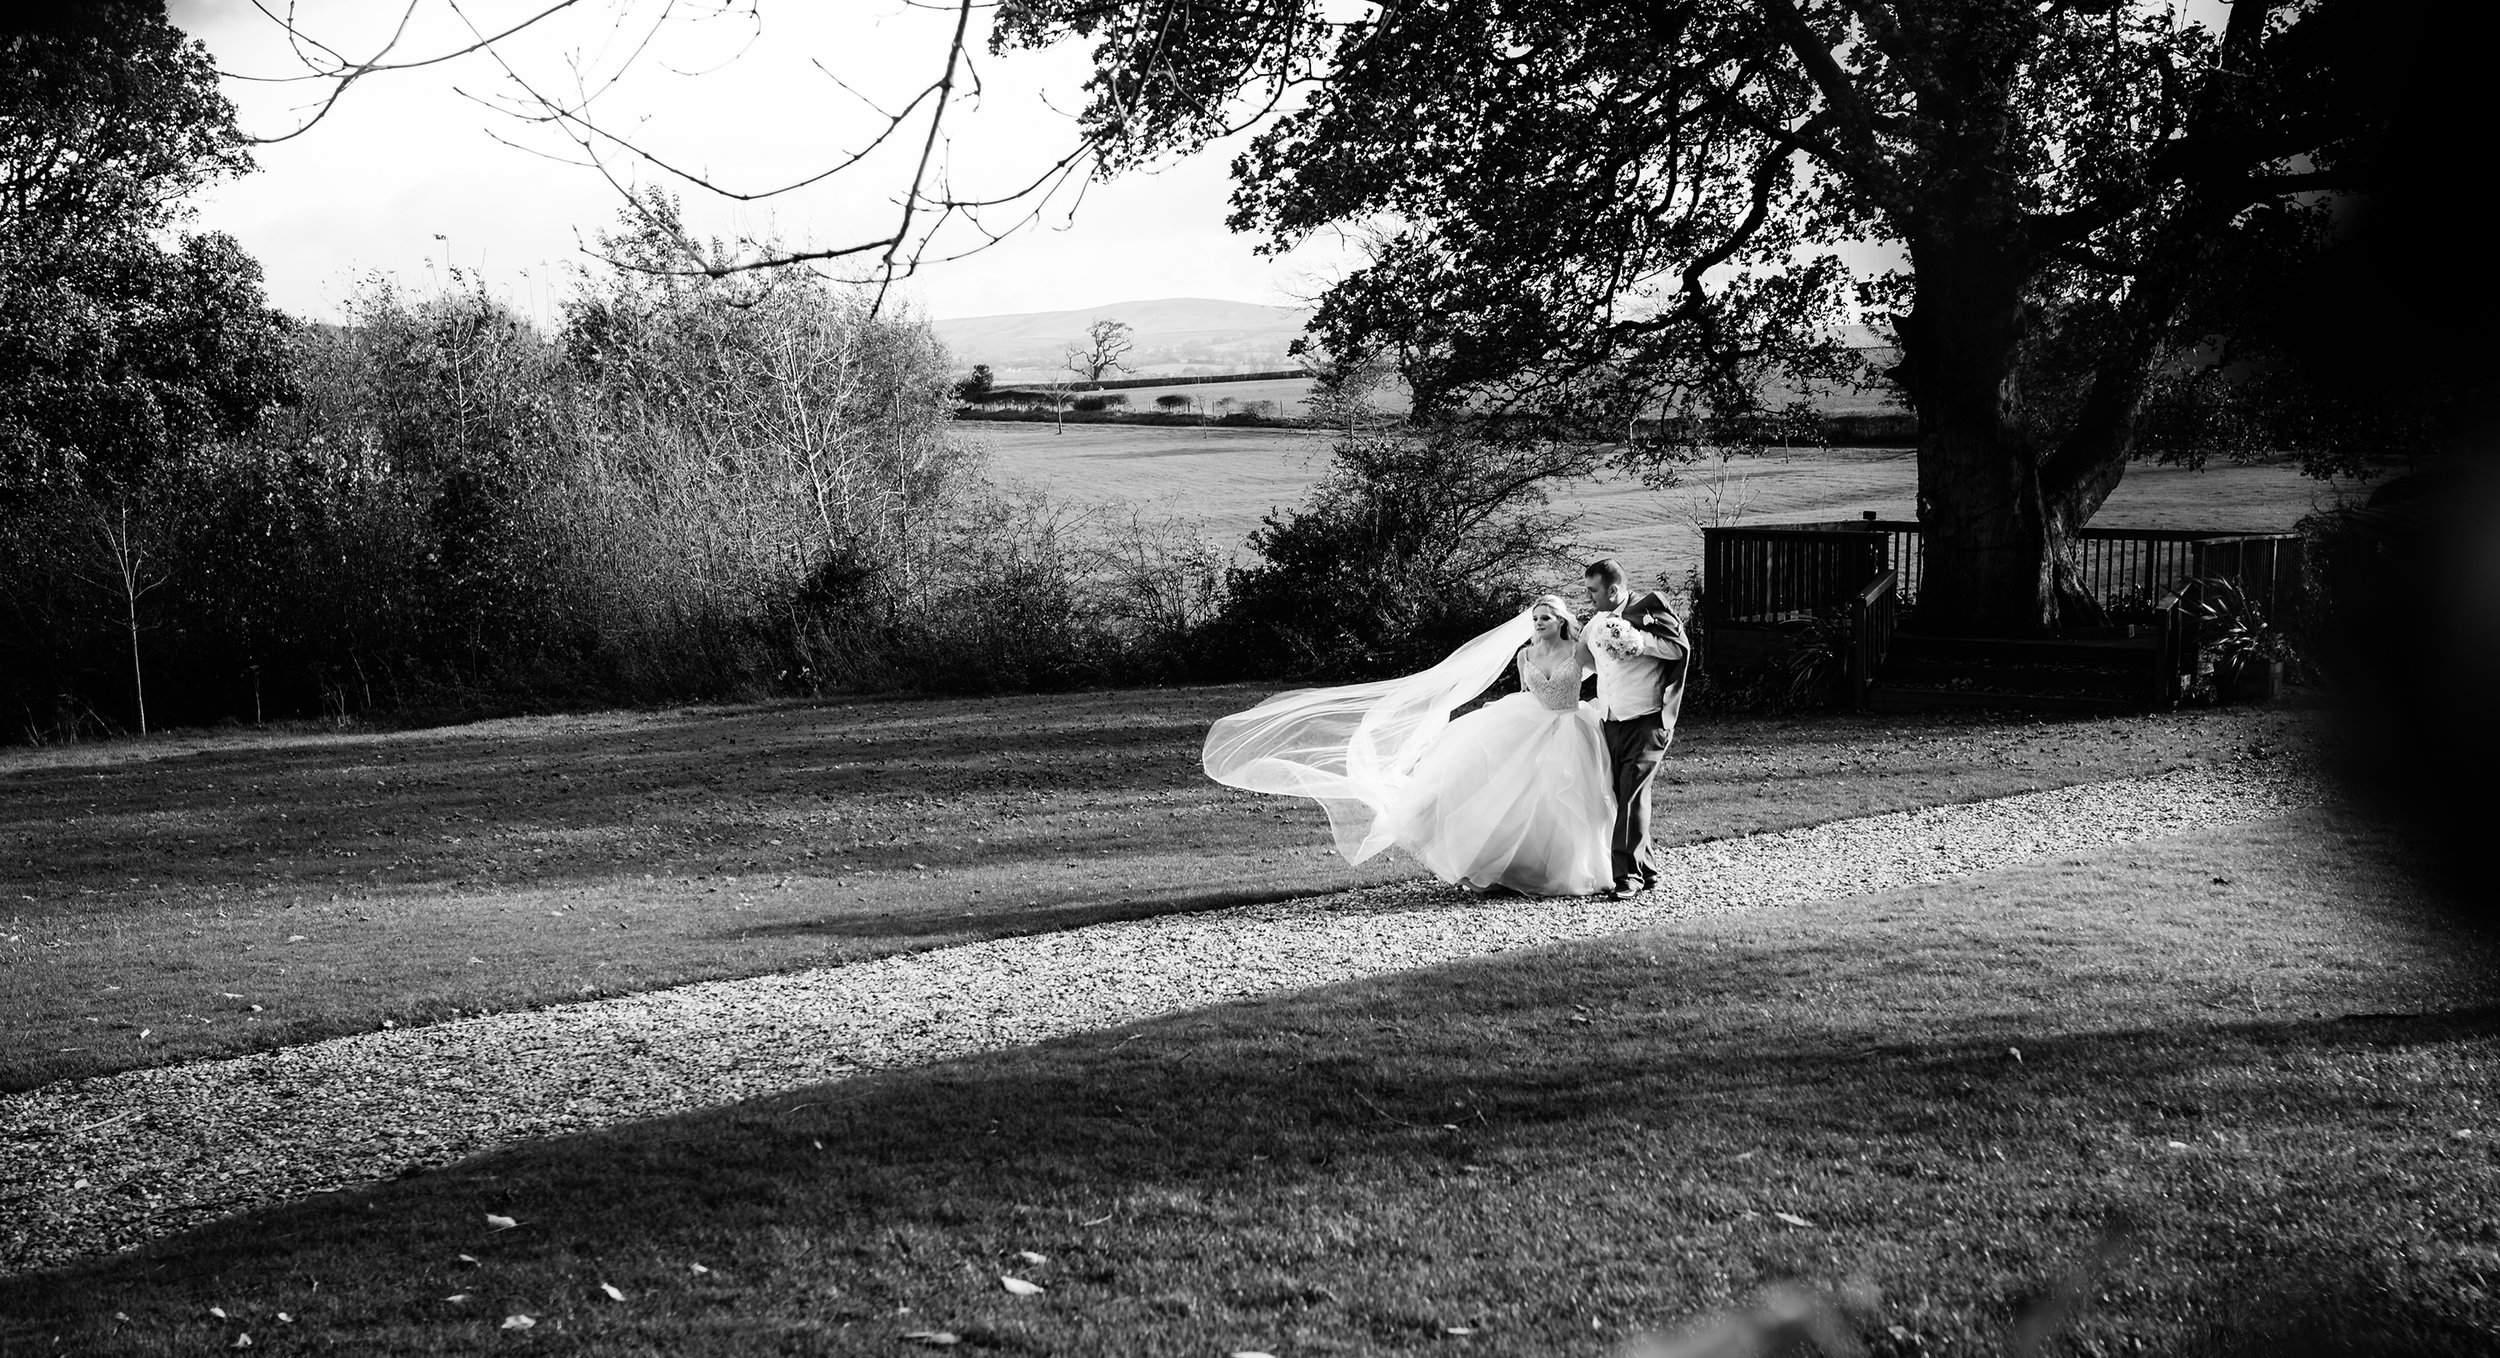 Black and white image of the bride and groom walking in the garden